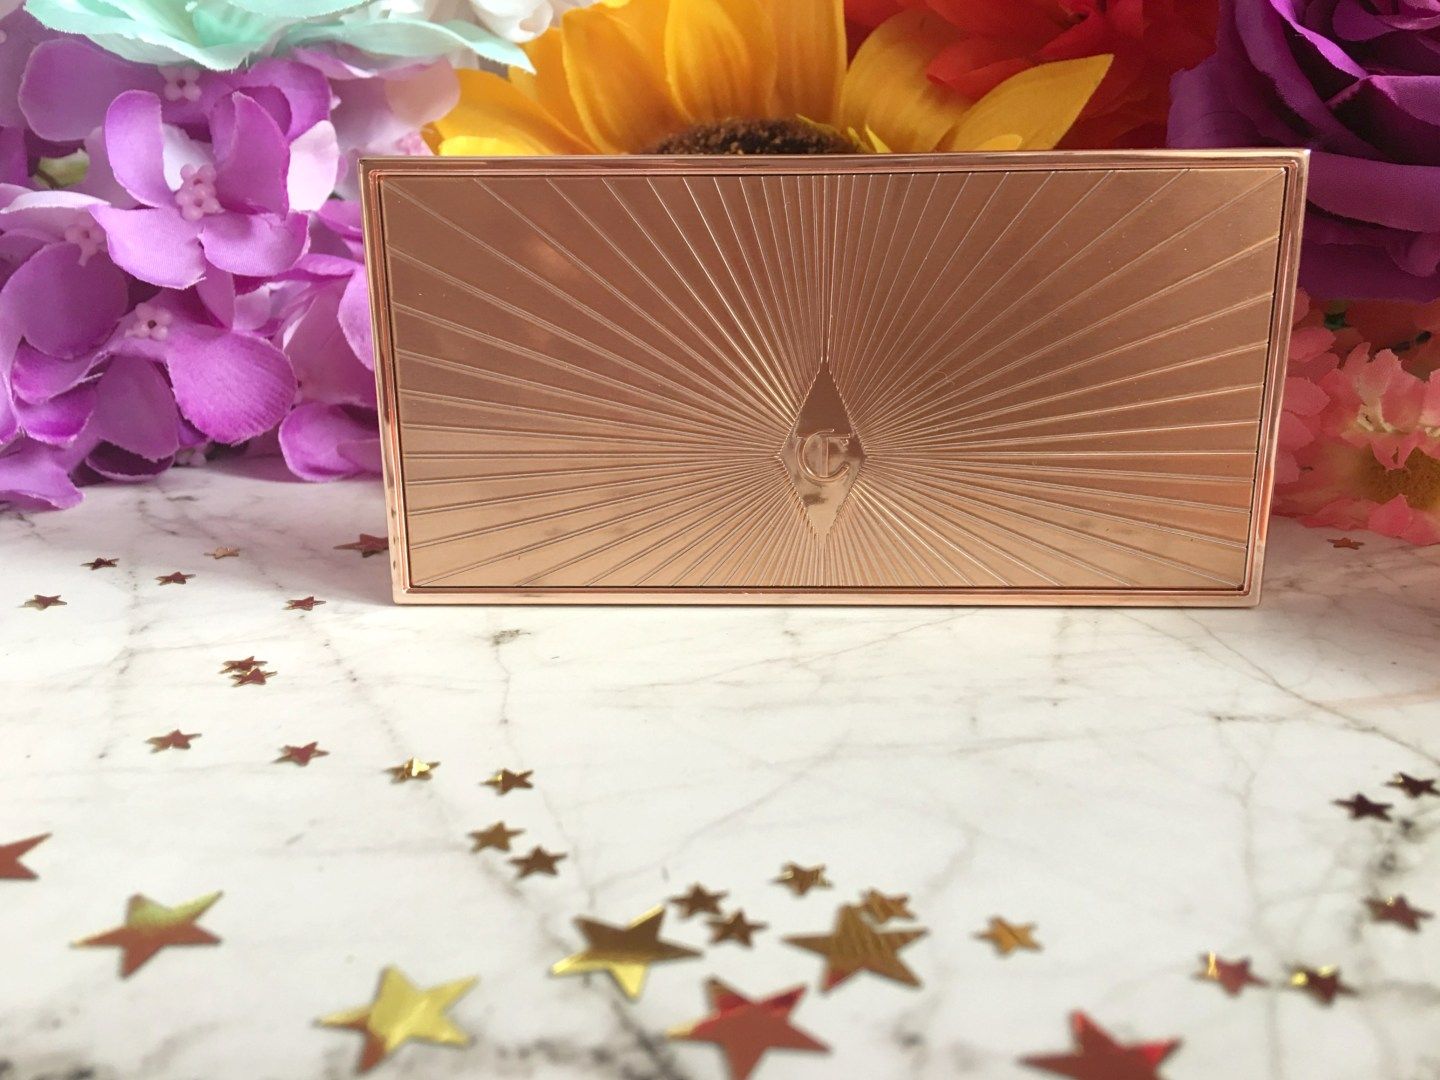 Charlotte Tilbury Filmstar Bronze and Glow Musings of a Makeup Junkie (5)